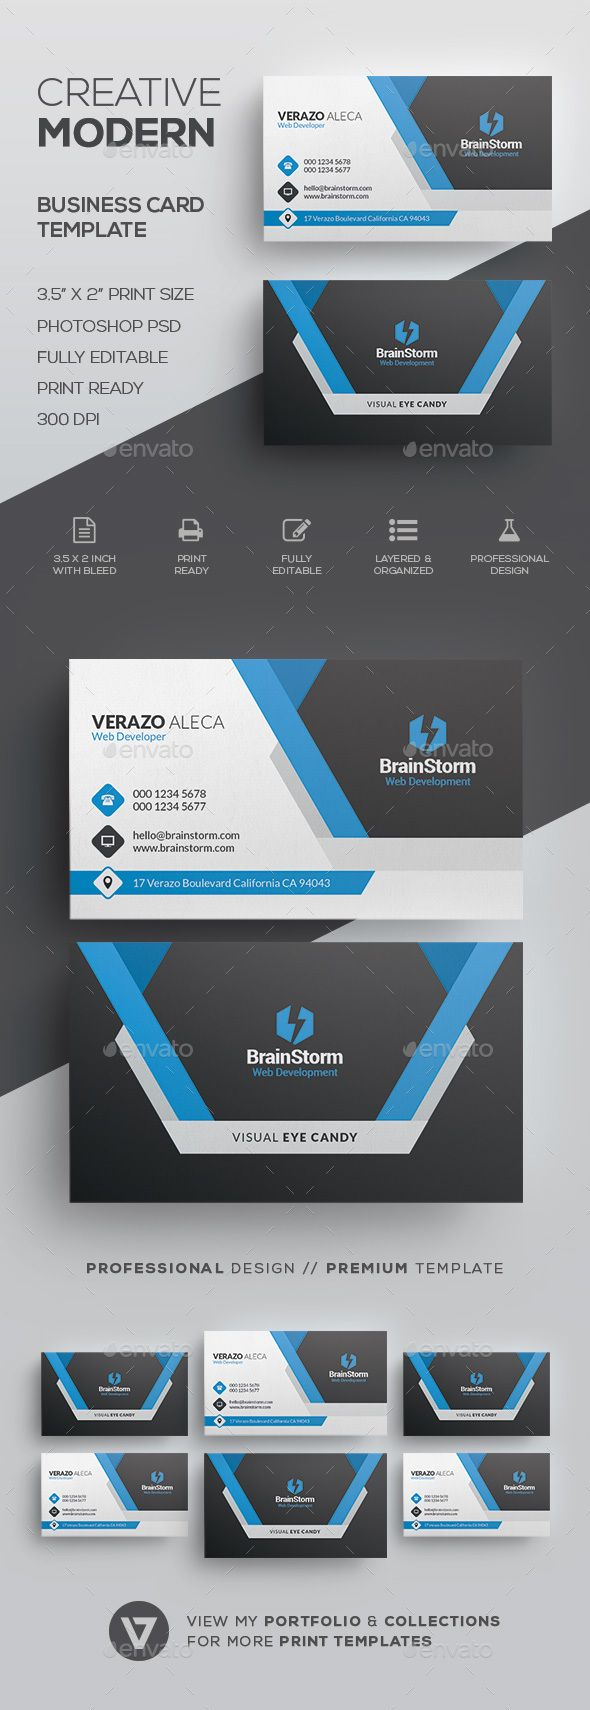 490 best id card images on pinterest business card design modern business card template reheart Images